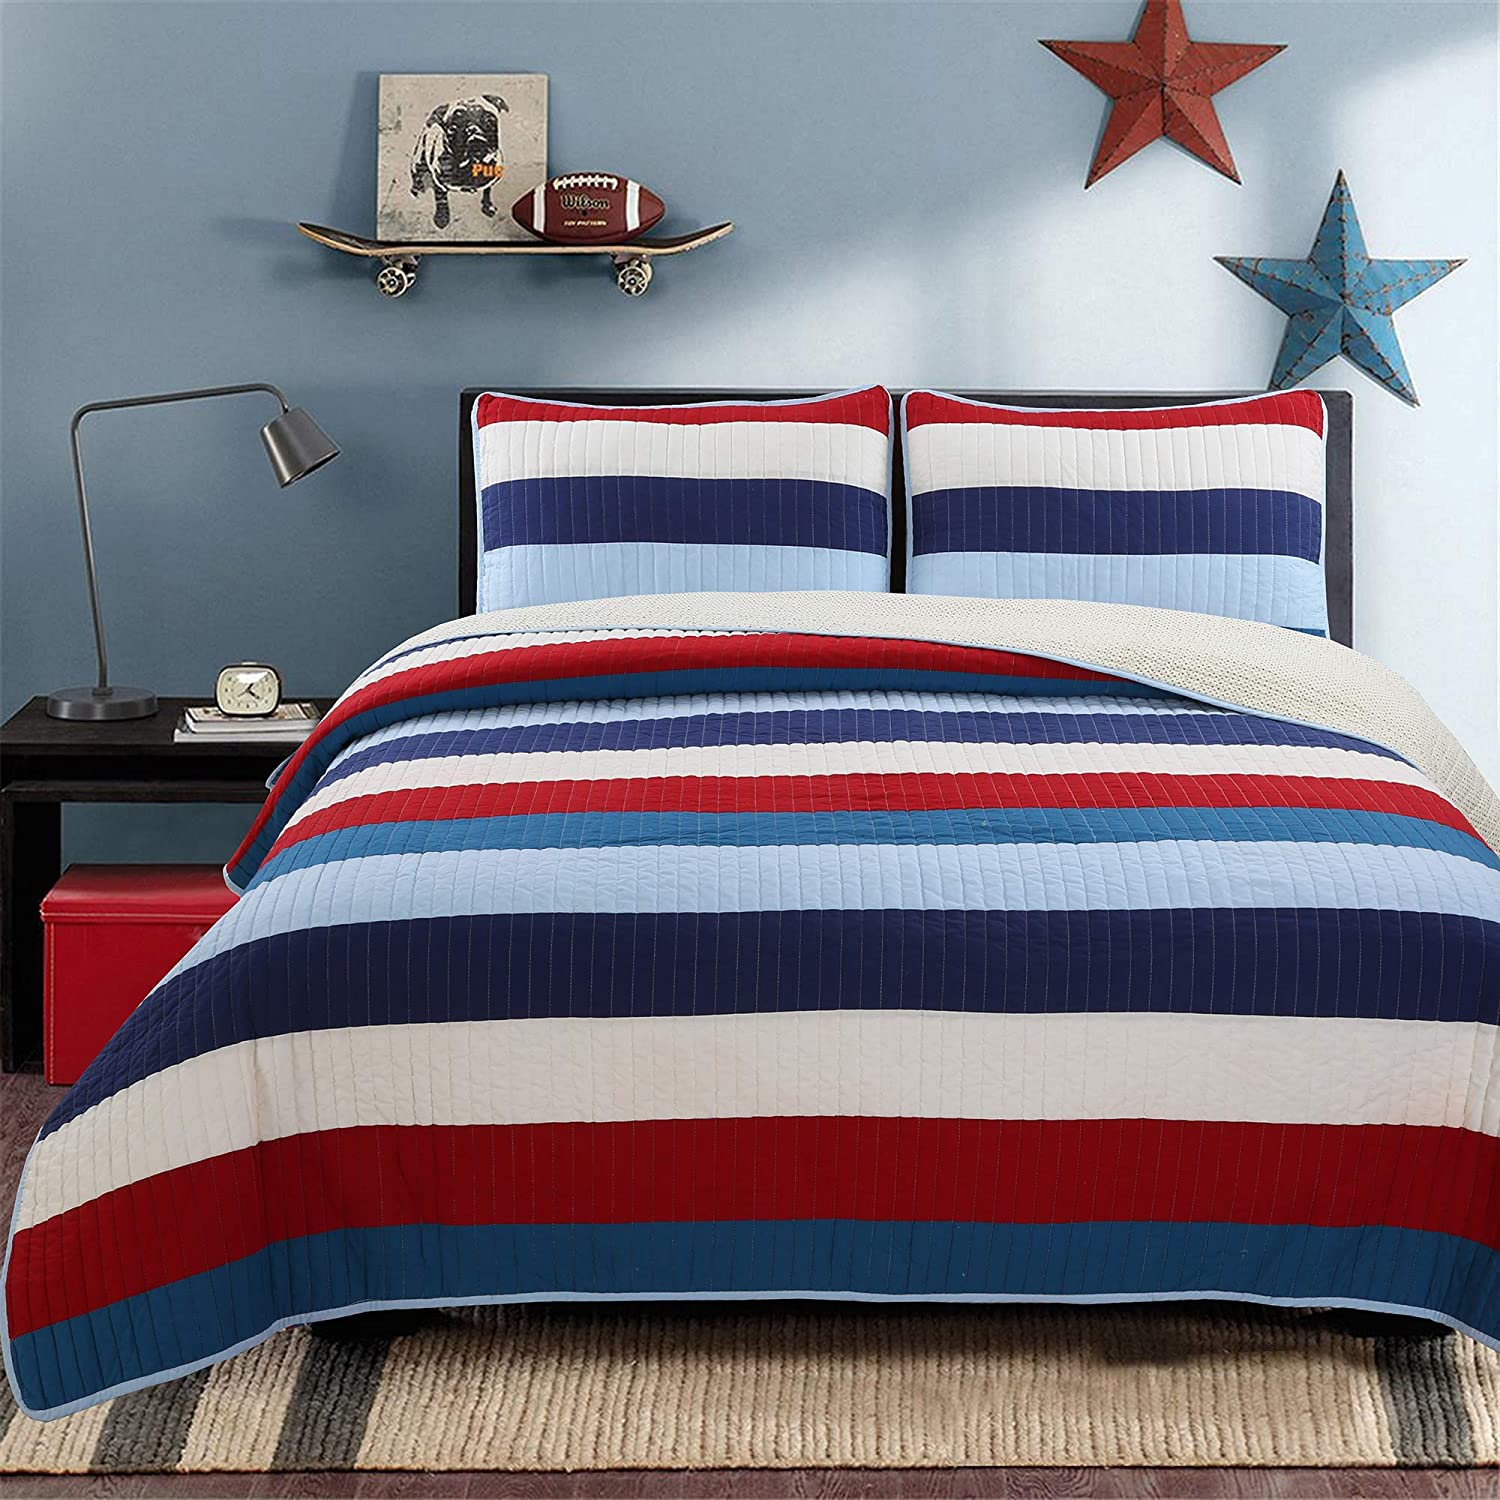 Cozy Line Home Fashions Aaron Bedding Quilt Set, Nautical Navy Blue Red Off-White Striped Printed 100% Cotton Reversible Coverlet Bedspread Bedding Set (National Stripe, Twin - 2 Piece)